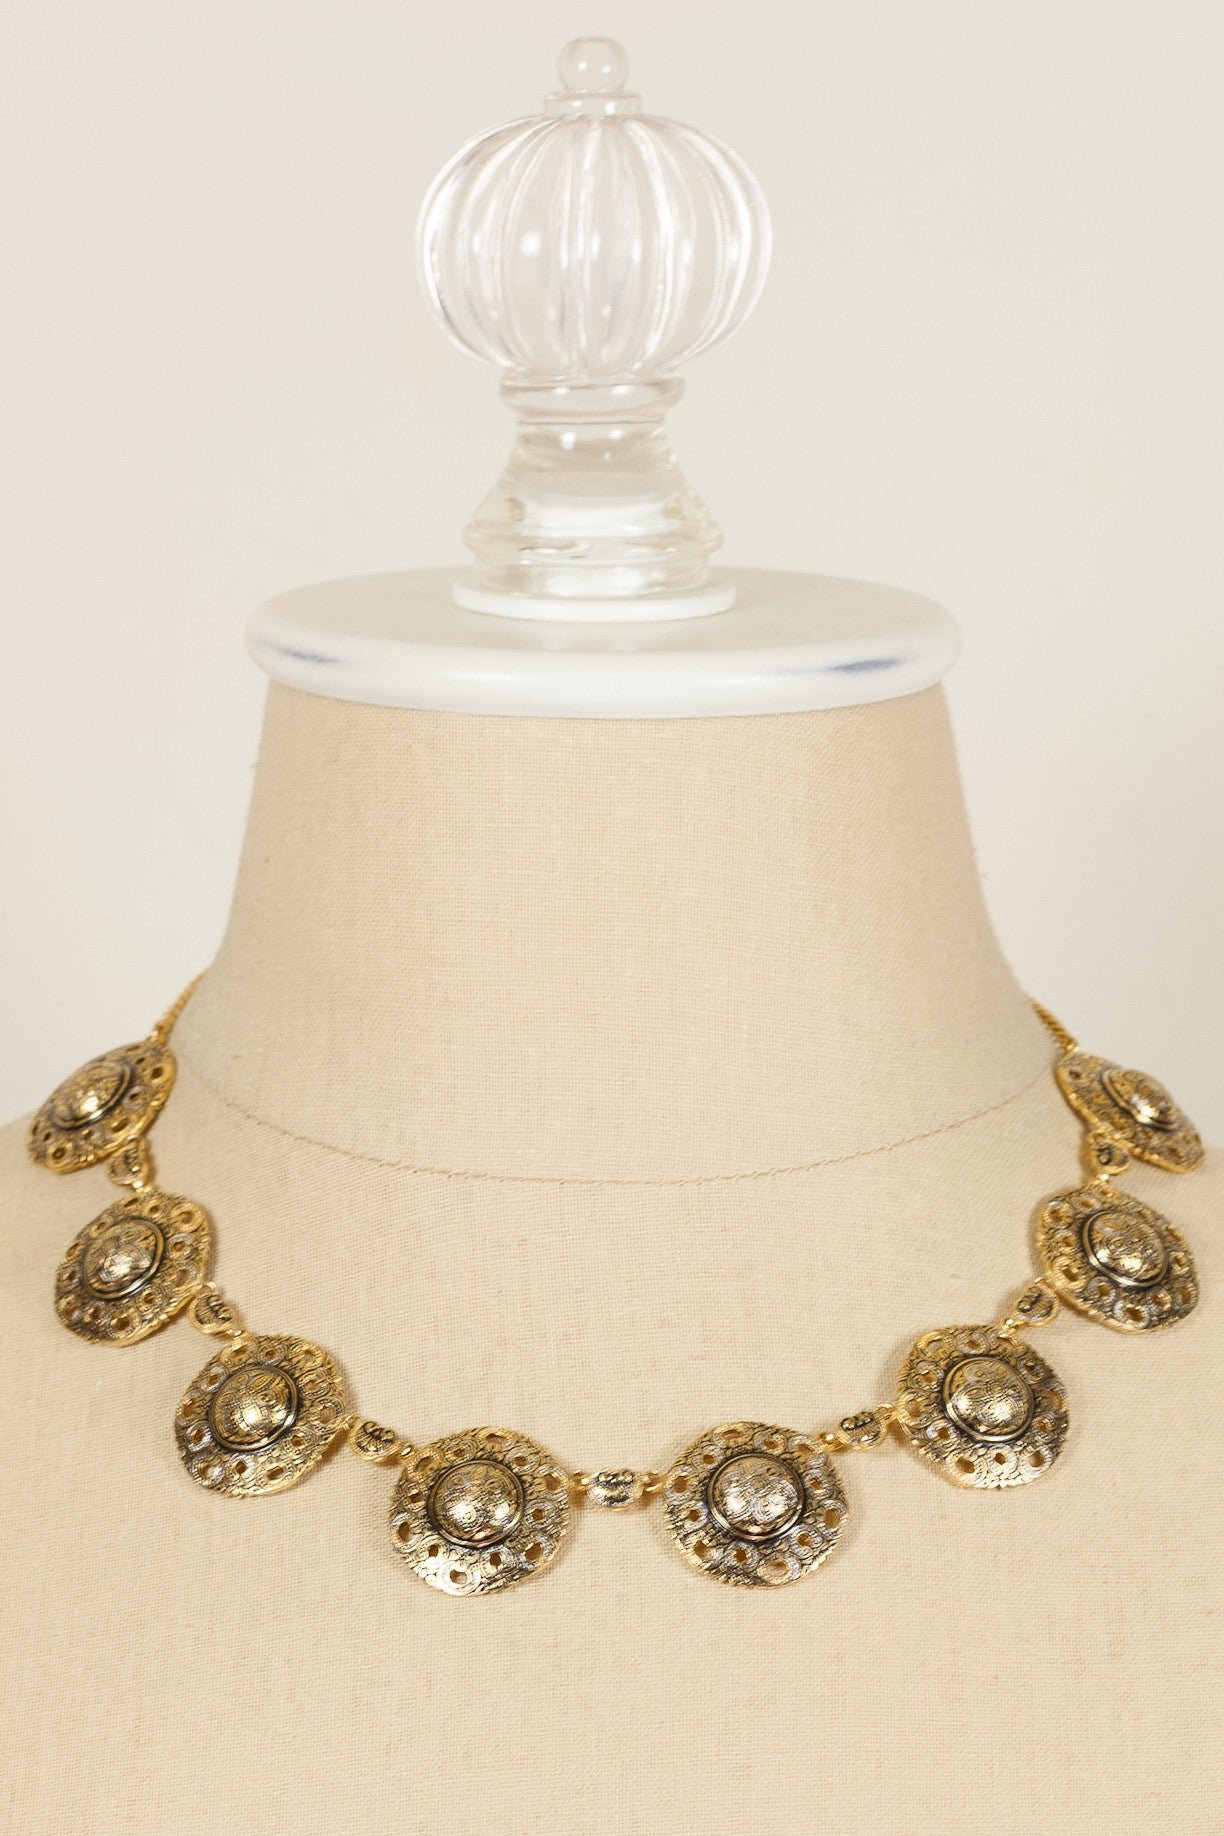 60's__Spain__Medallion Link Necklace